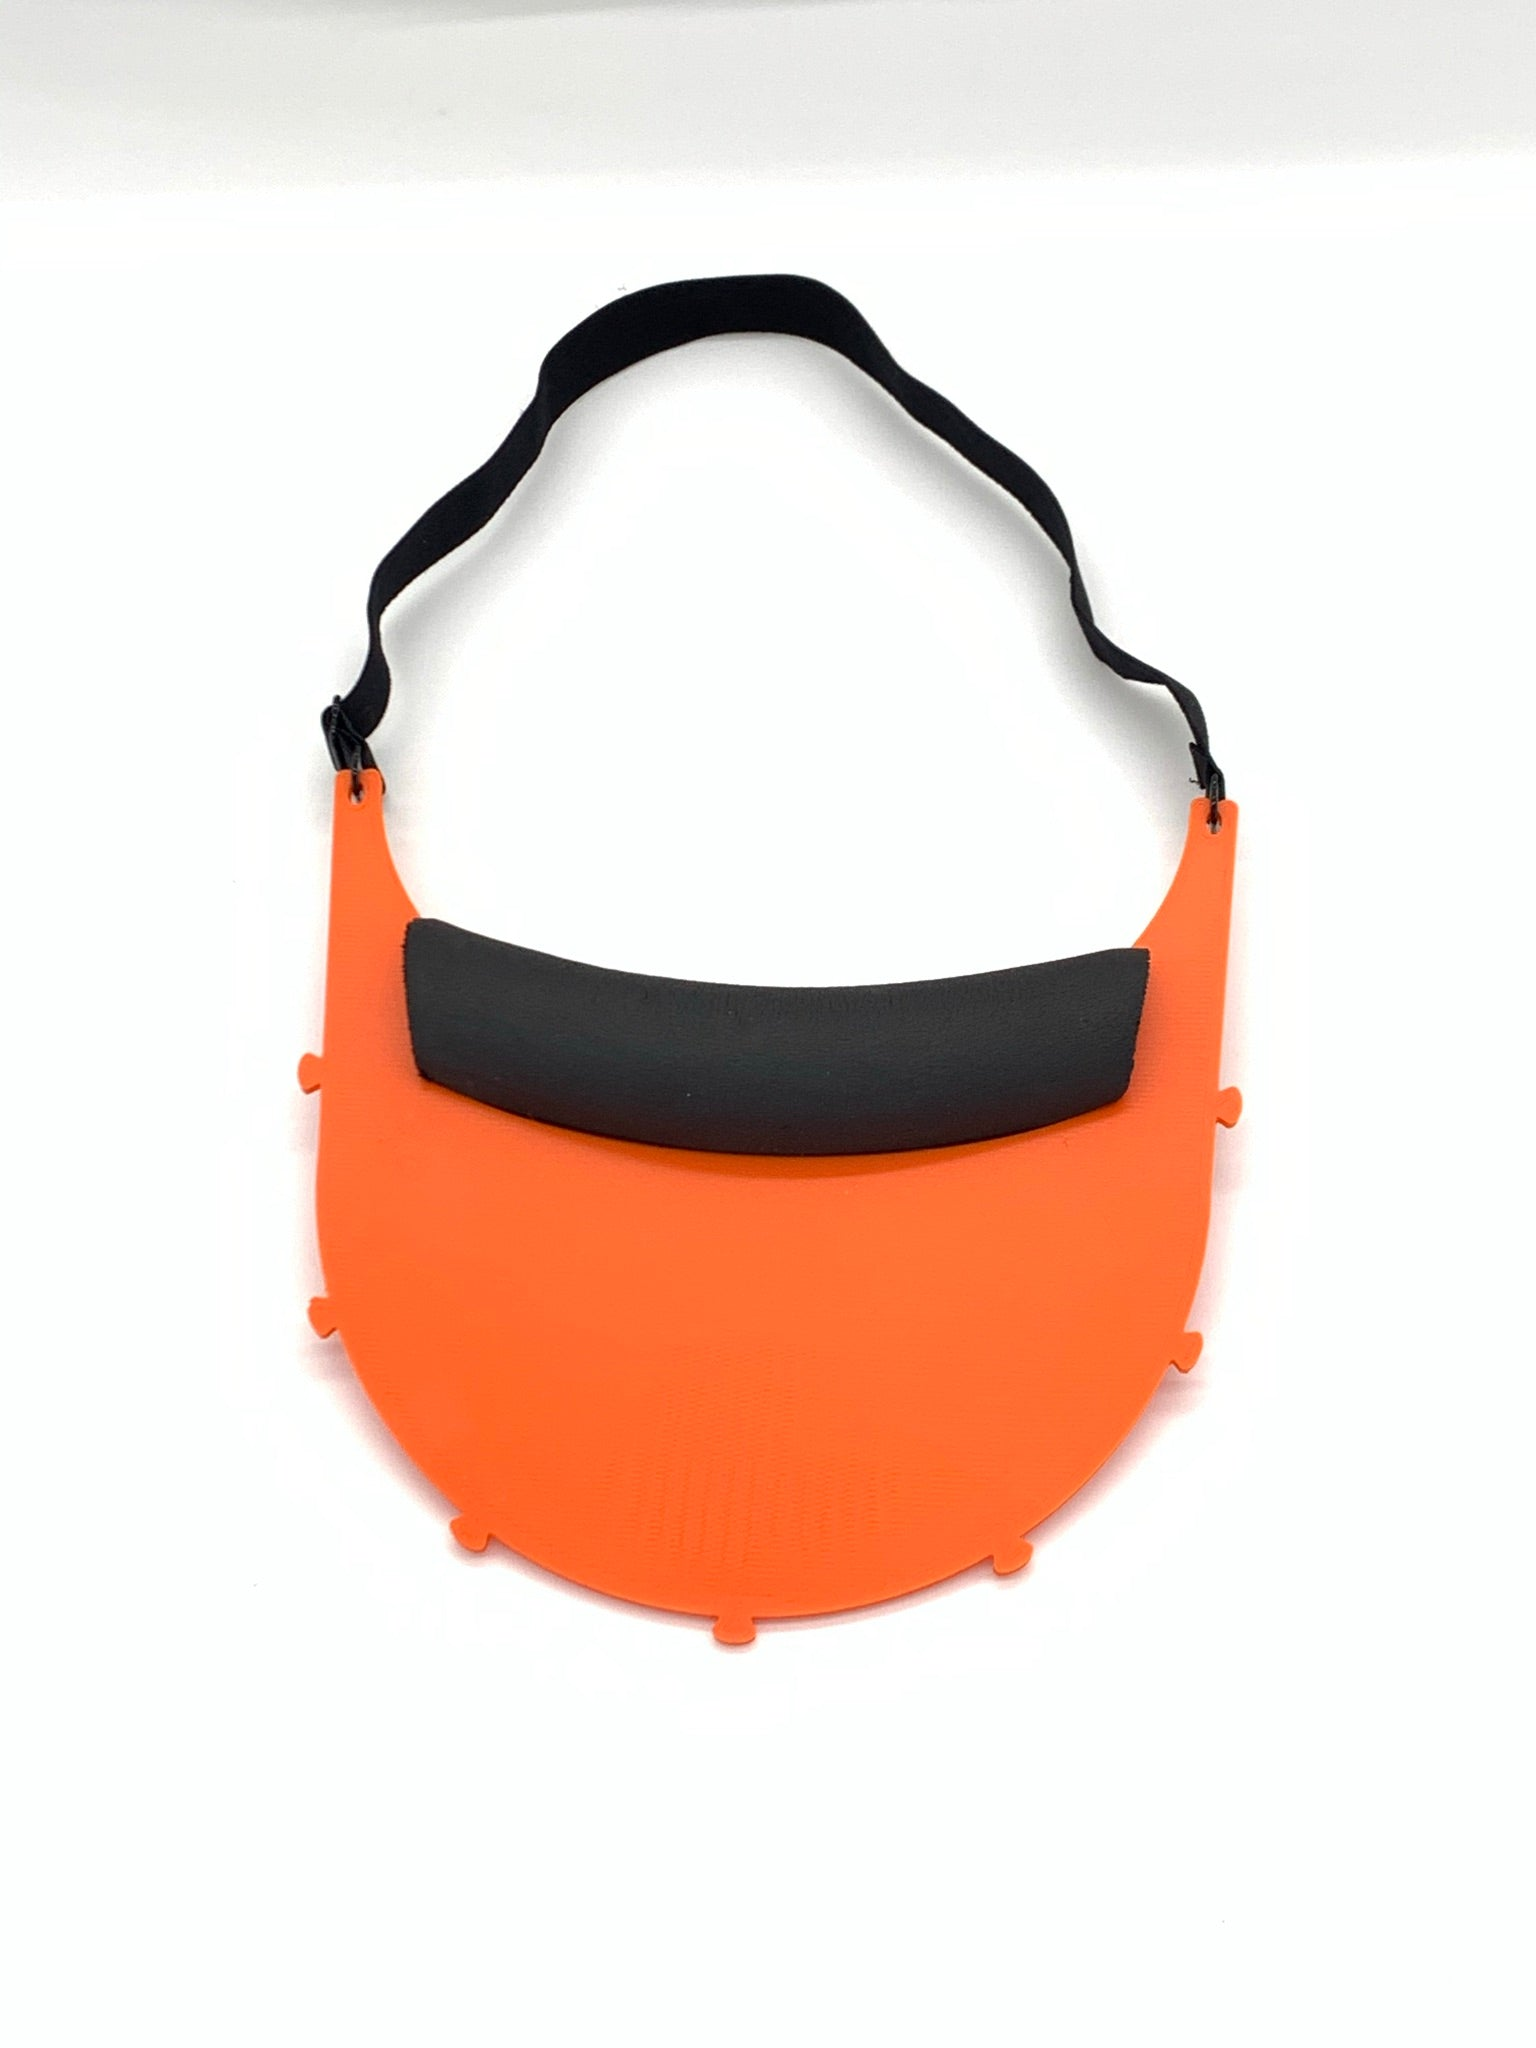 LoupeLid PLUS - Face Shield for Dental Loupes